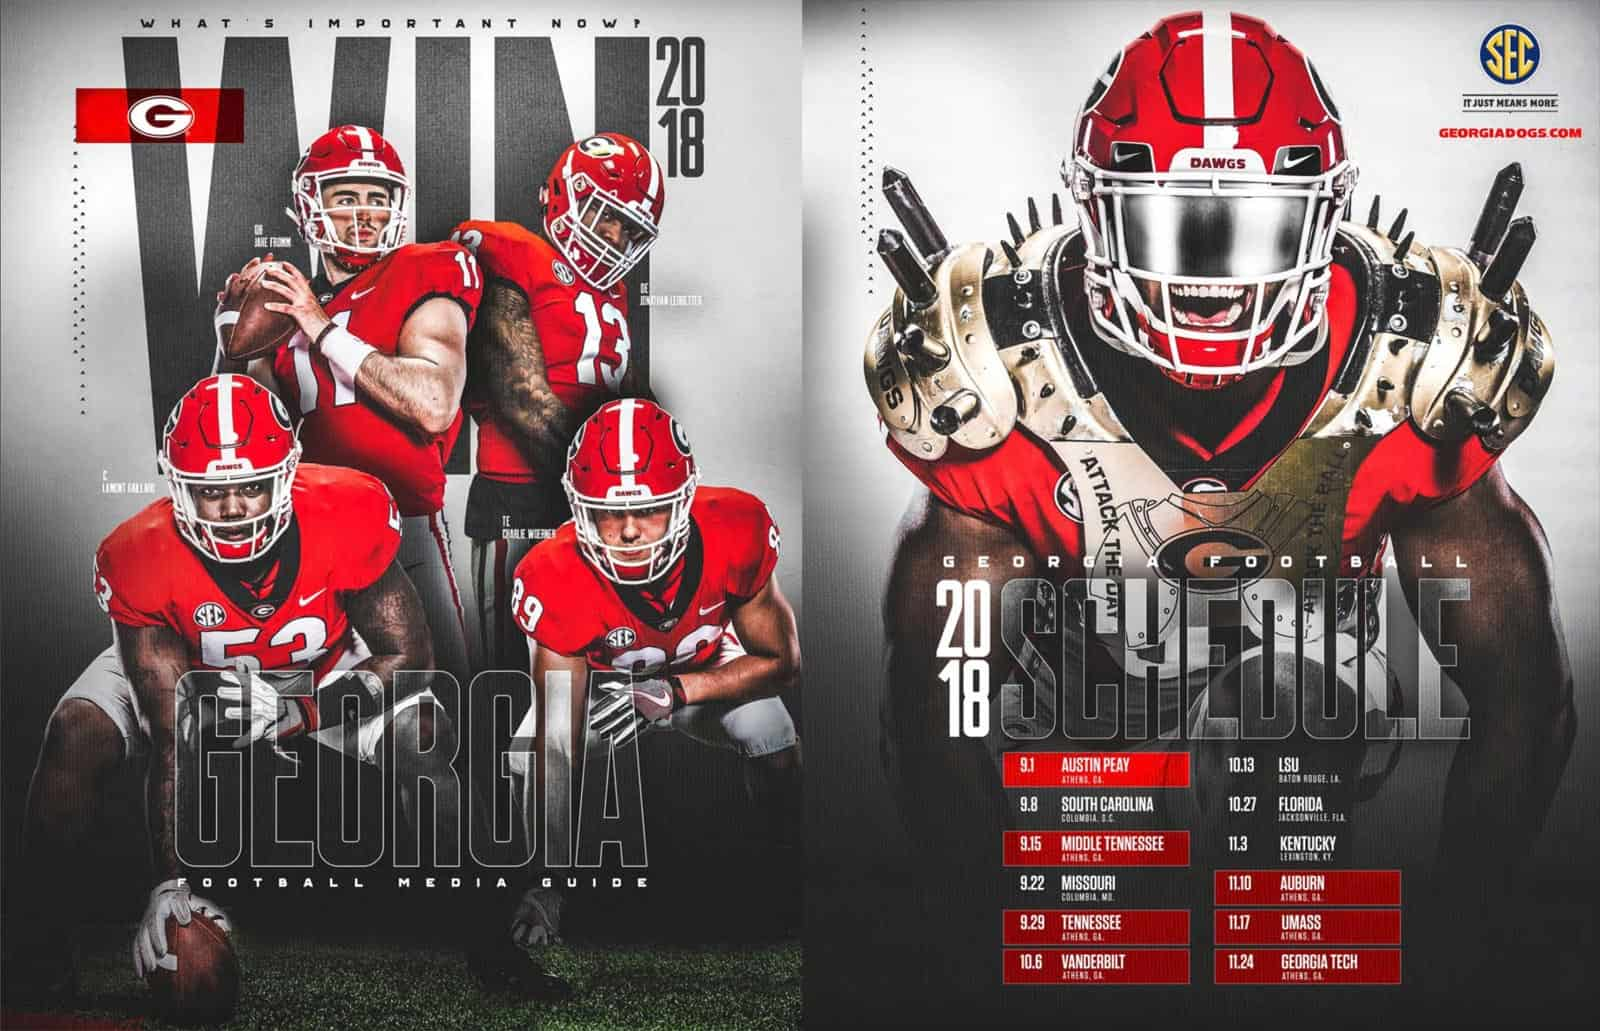 2018 Uga Football Media Guide Available To View Online